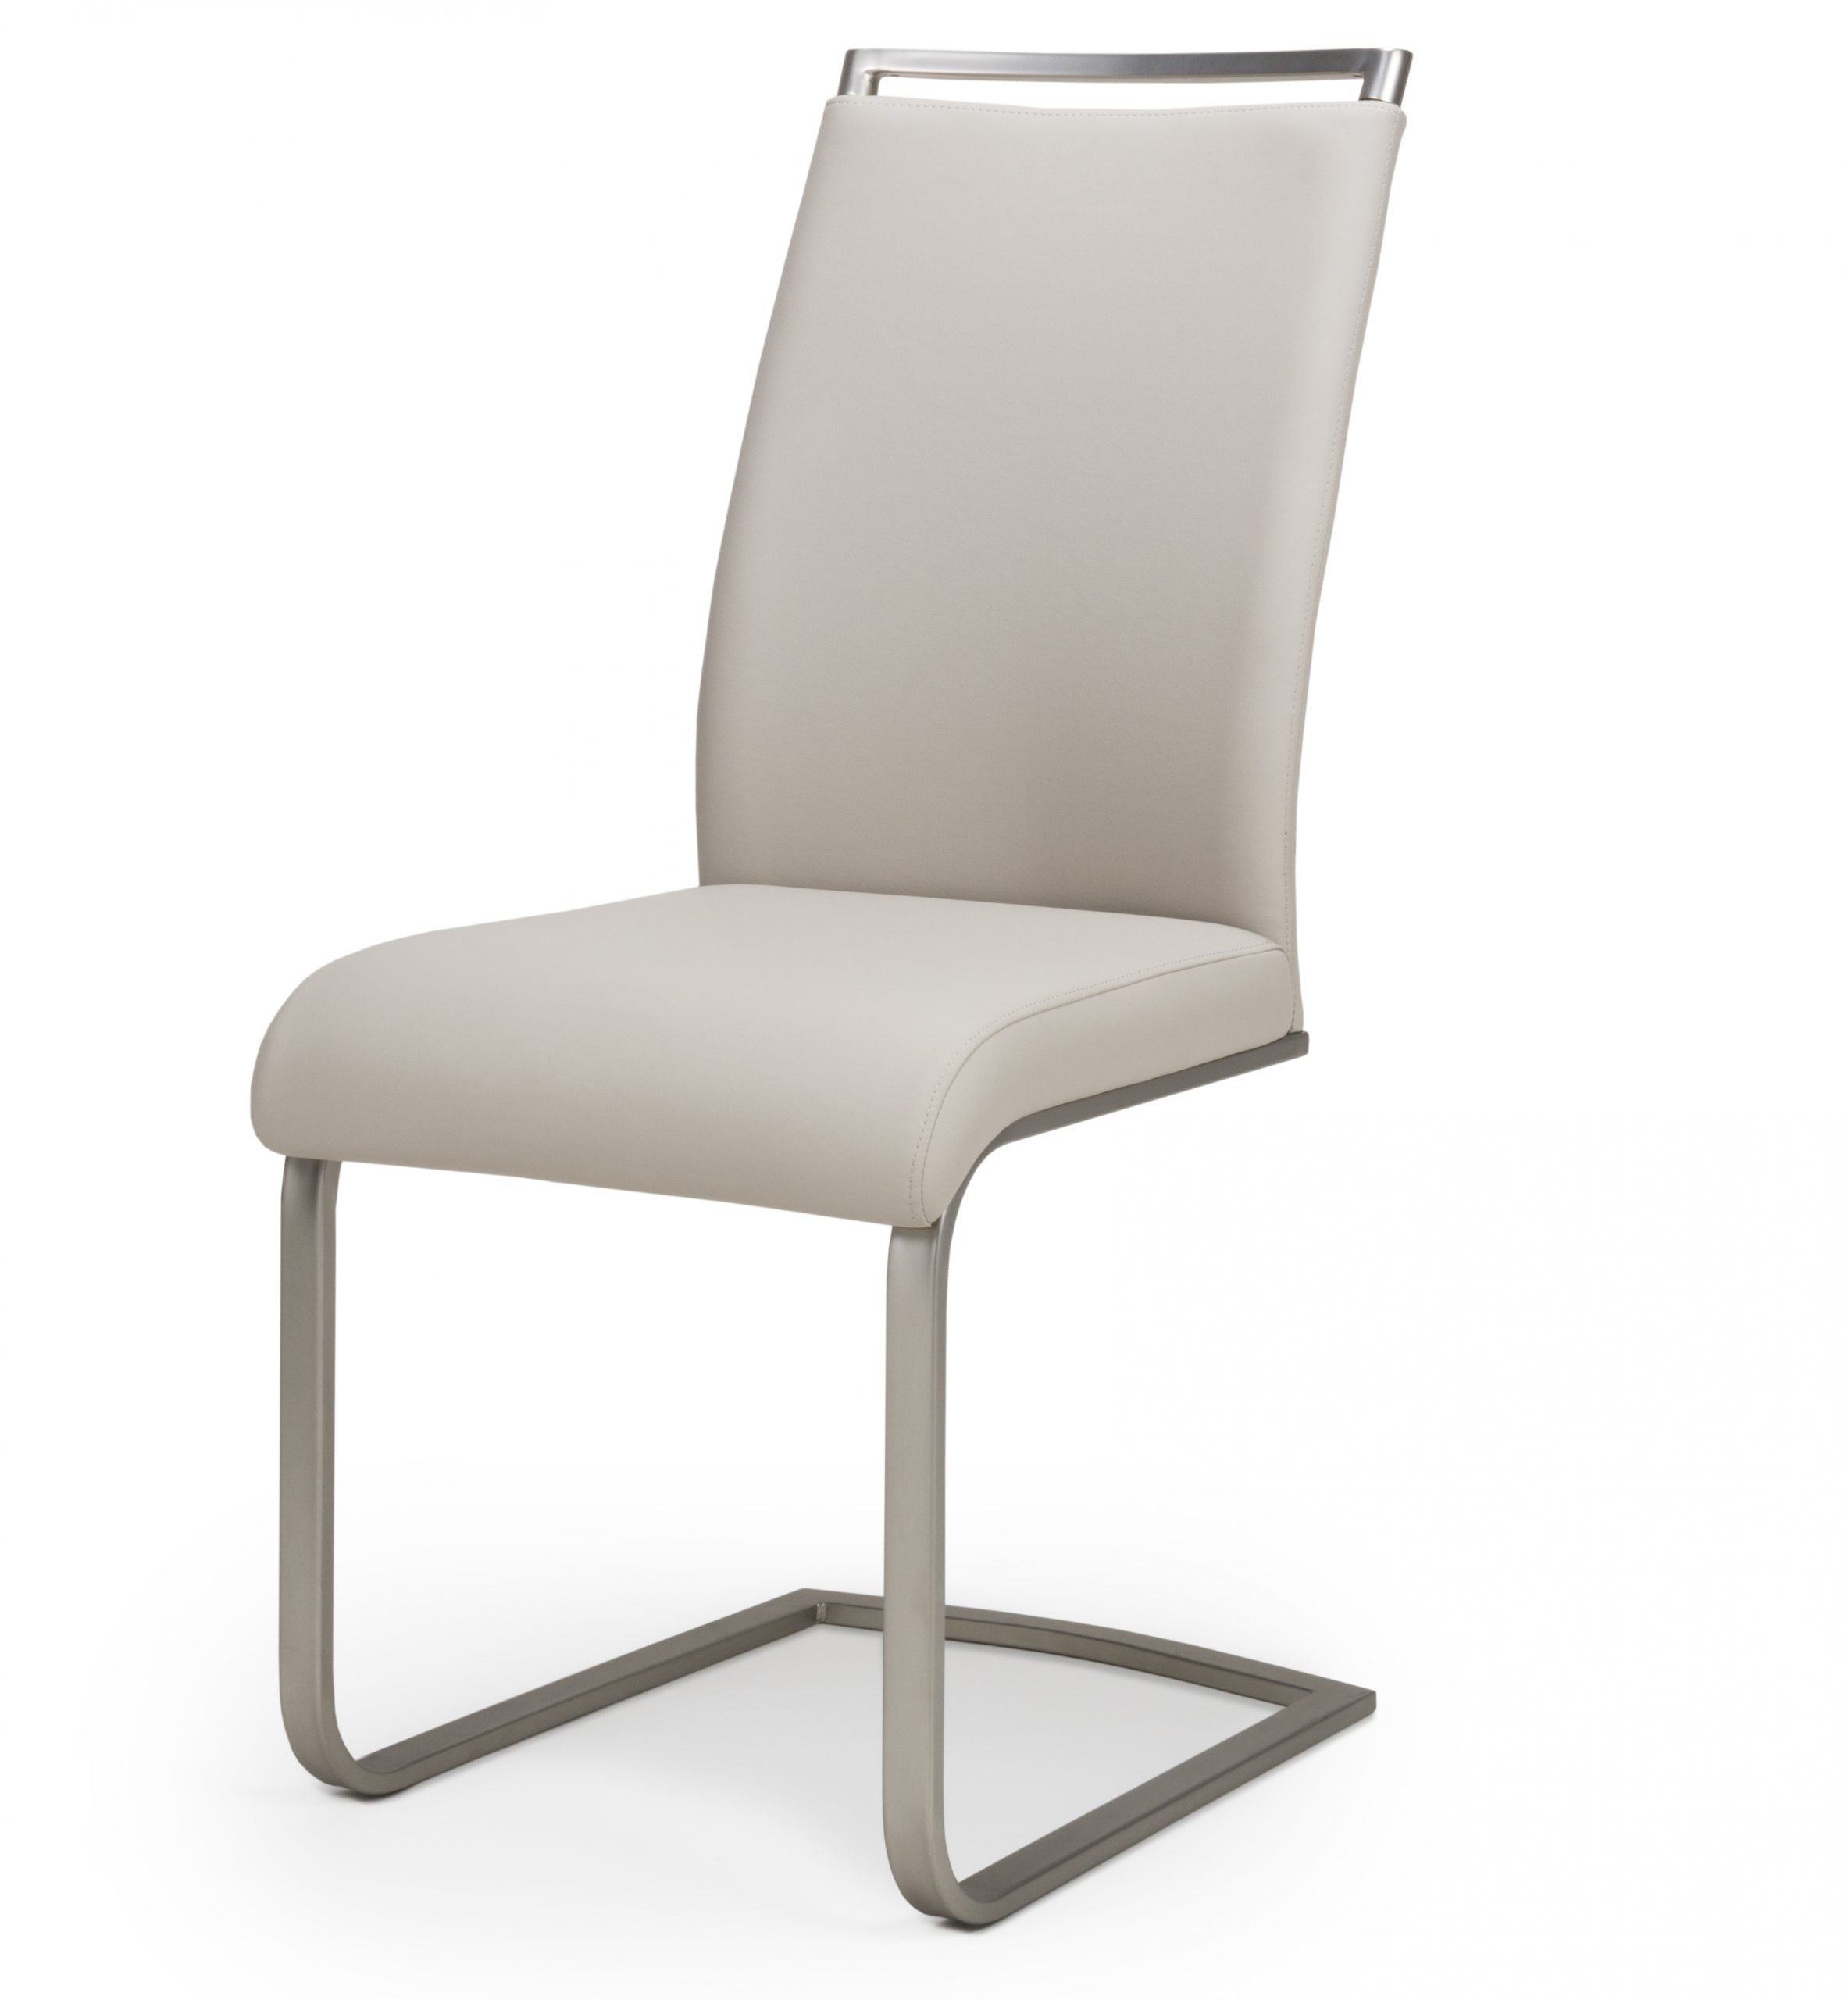 Franklin Taupe Leather Cantilever dining chair